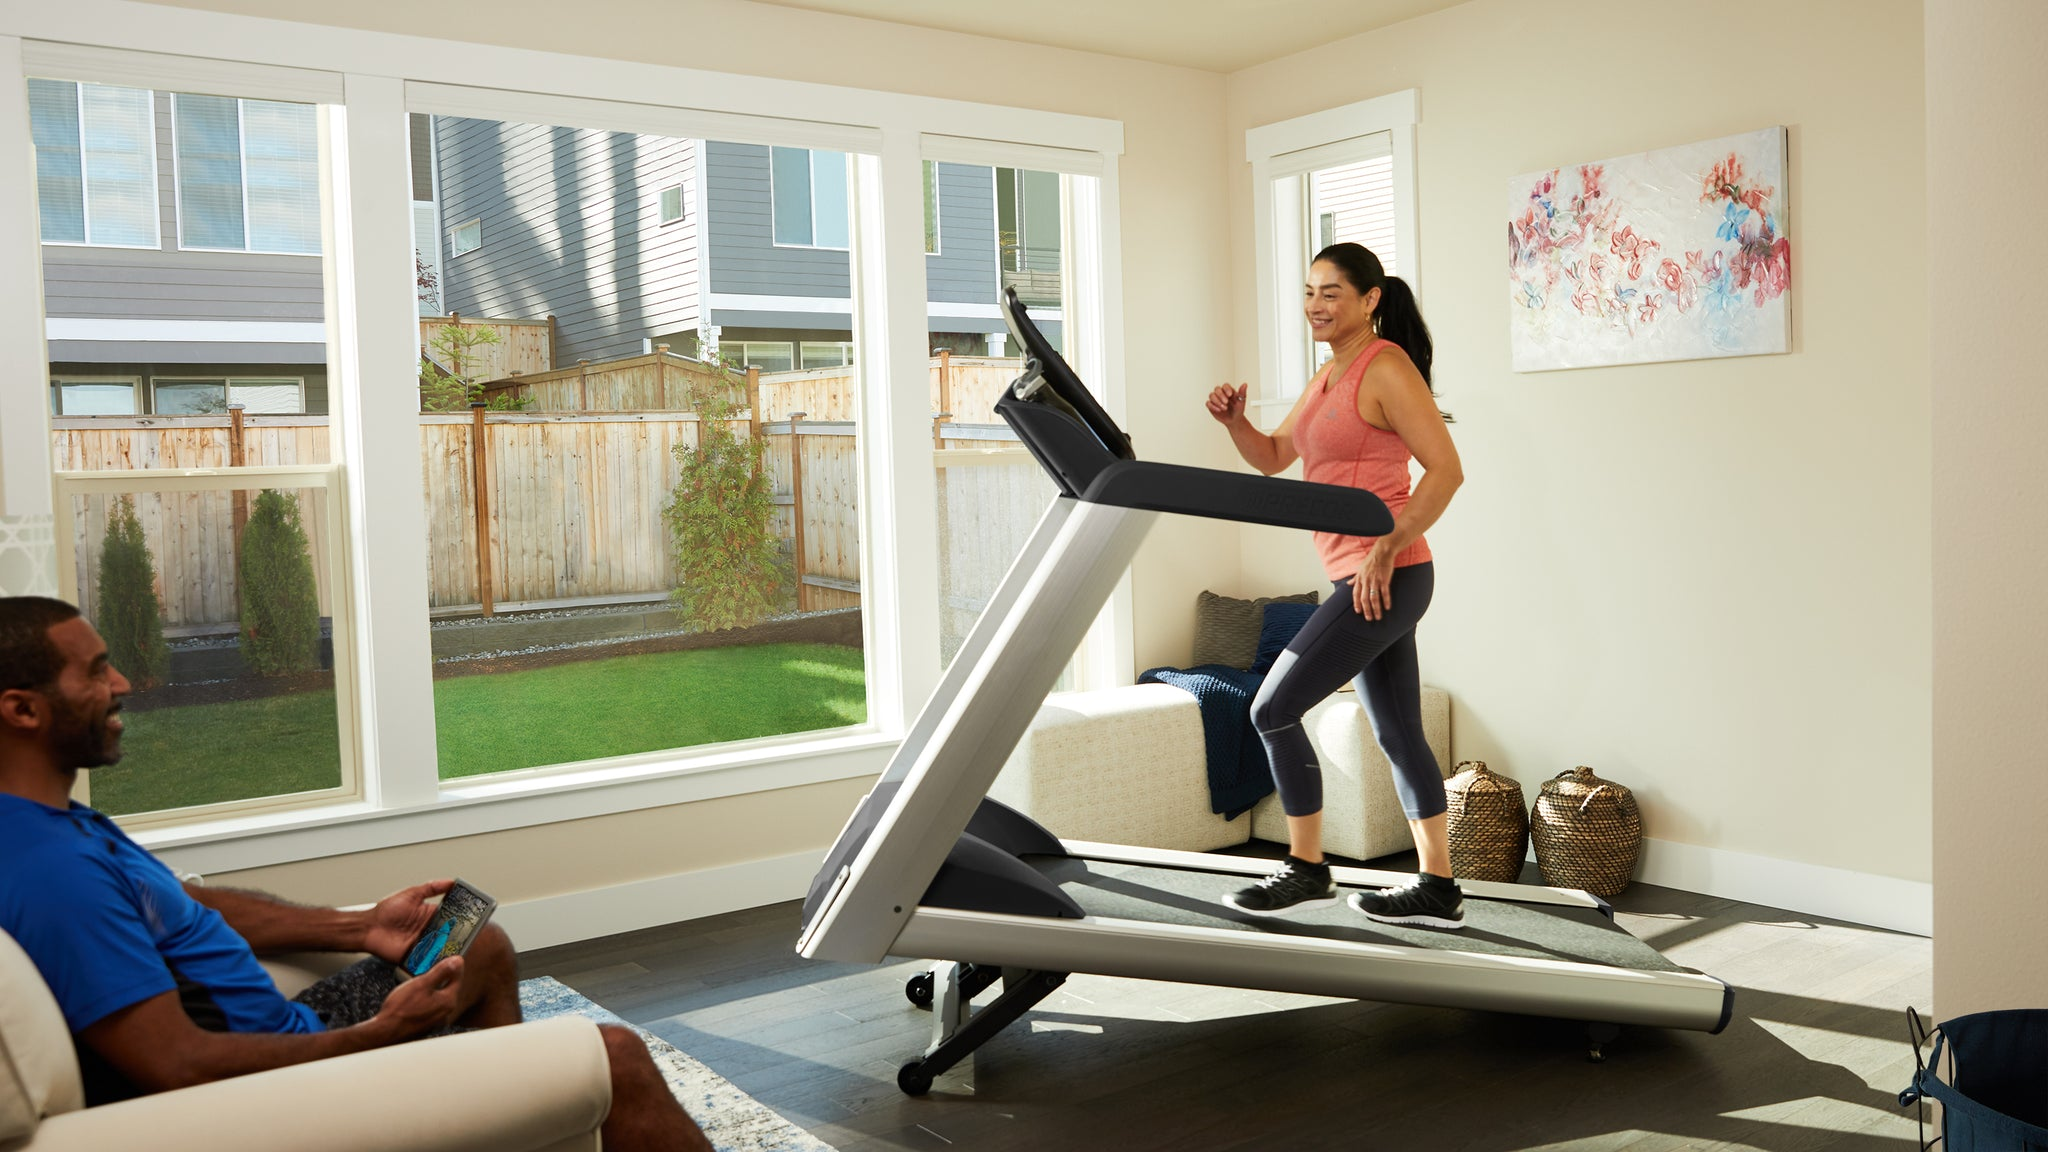 Woman works out on a walking treadmill as a man exercises in the room